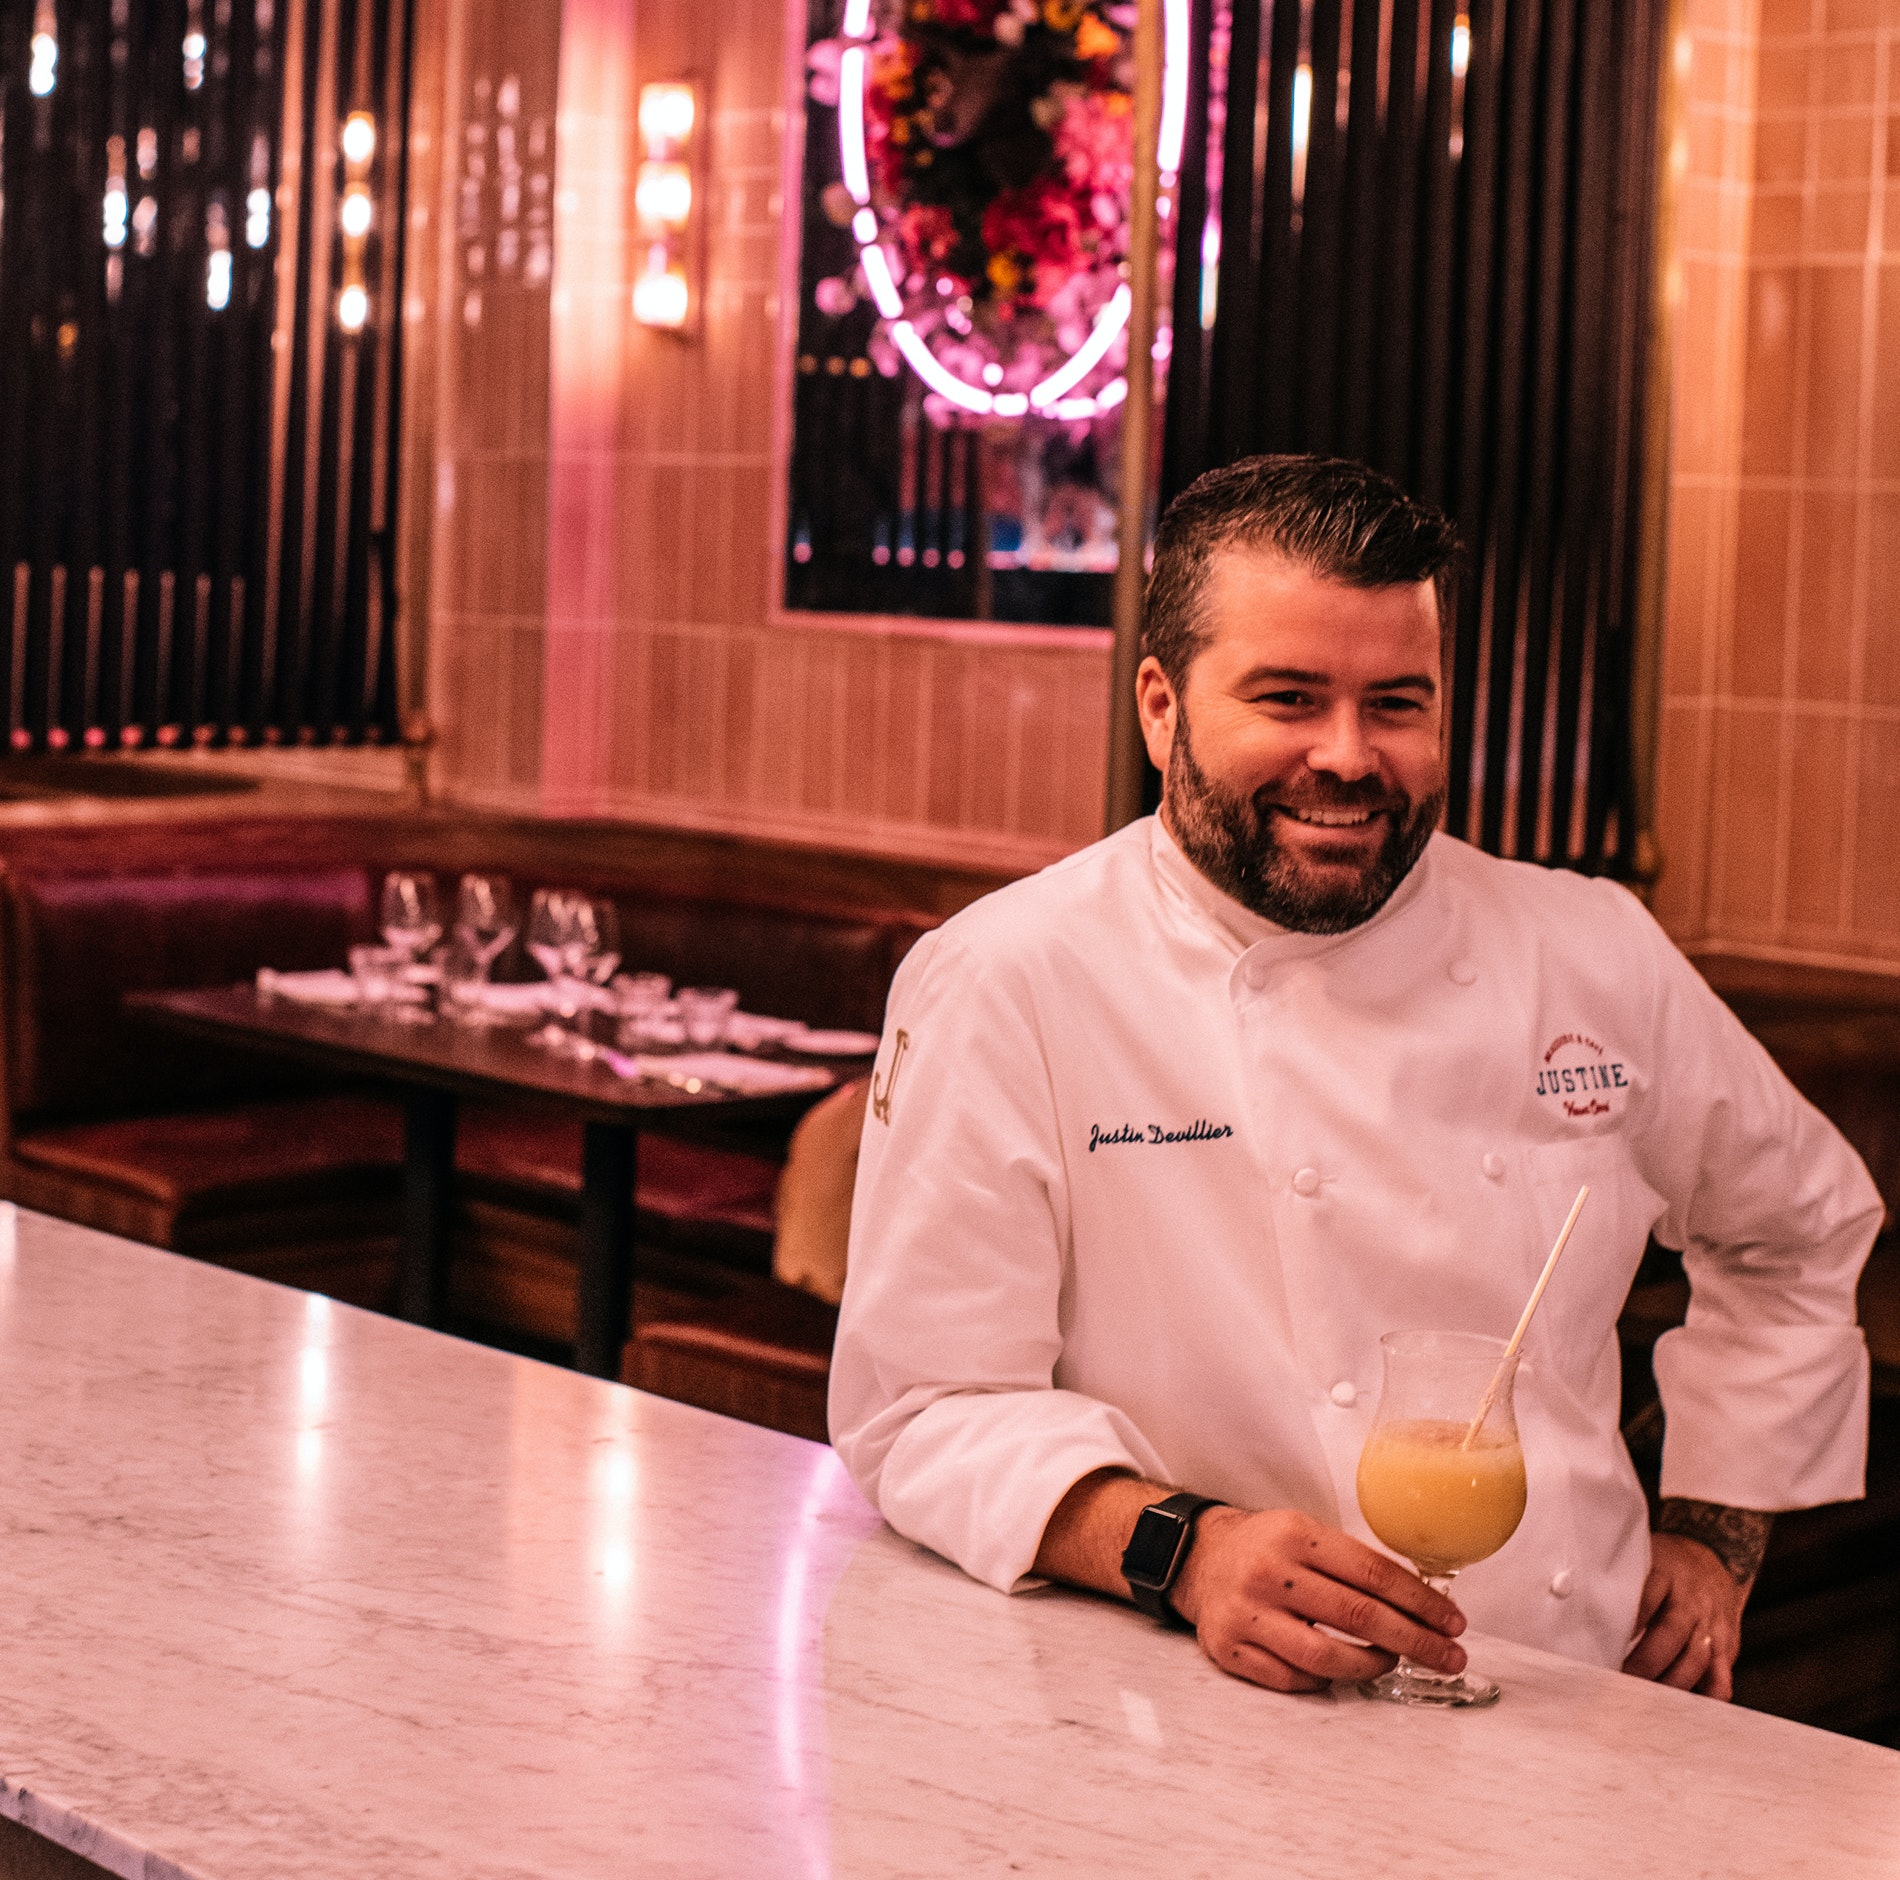 Where to Go in New Orleans According to Chef Justin Devillier | AFAR